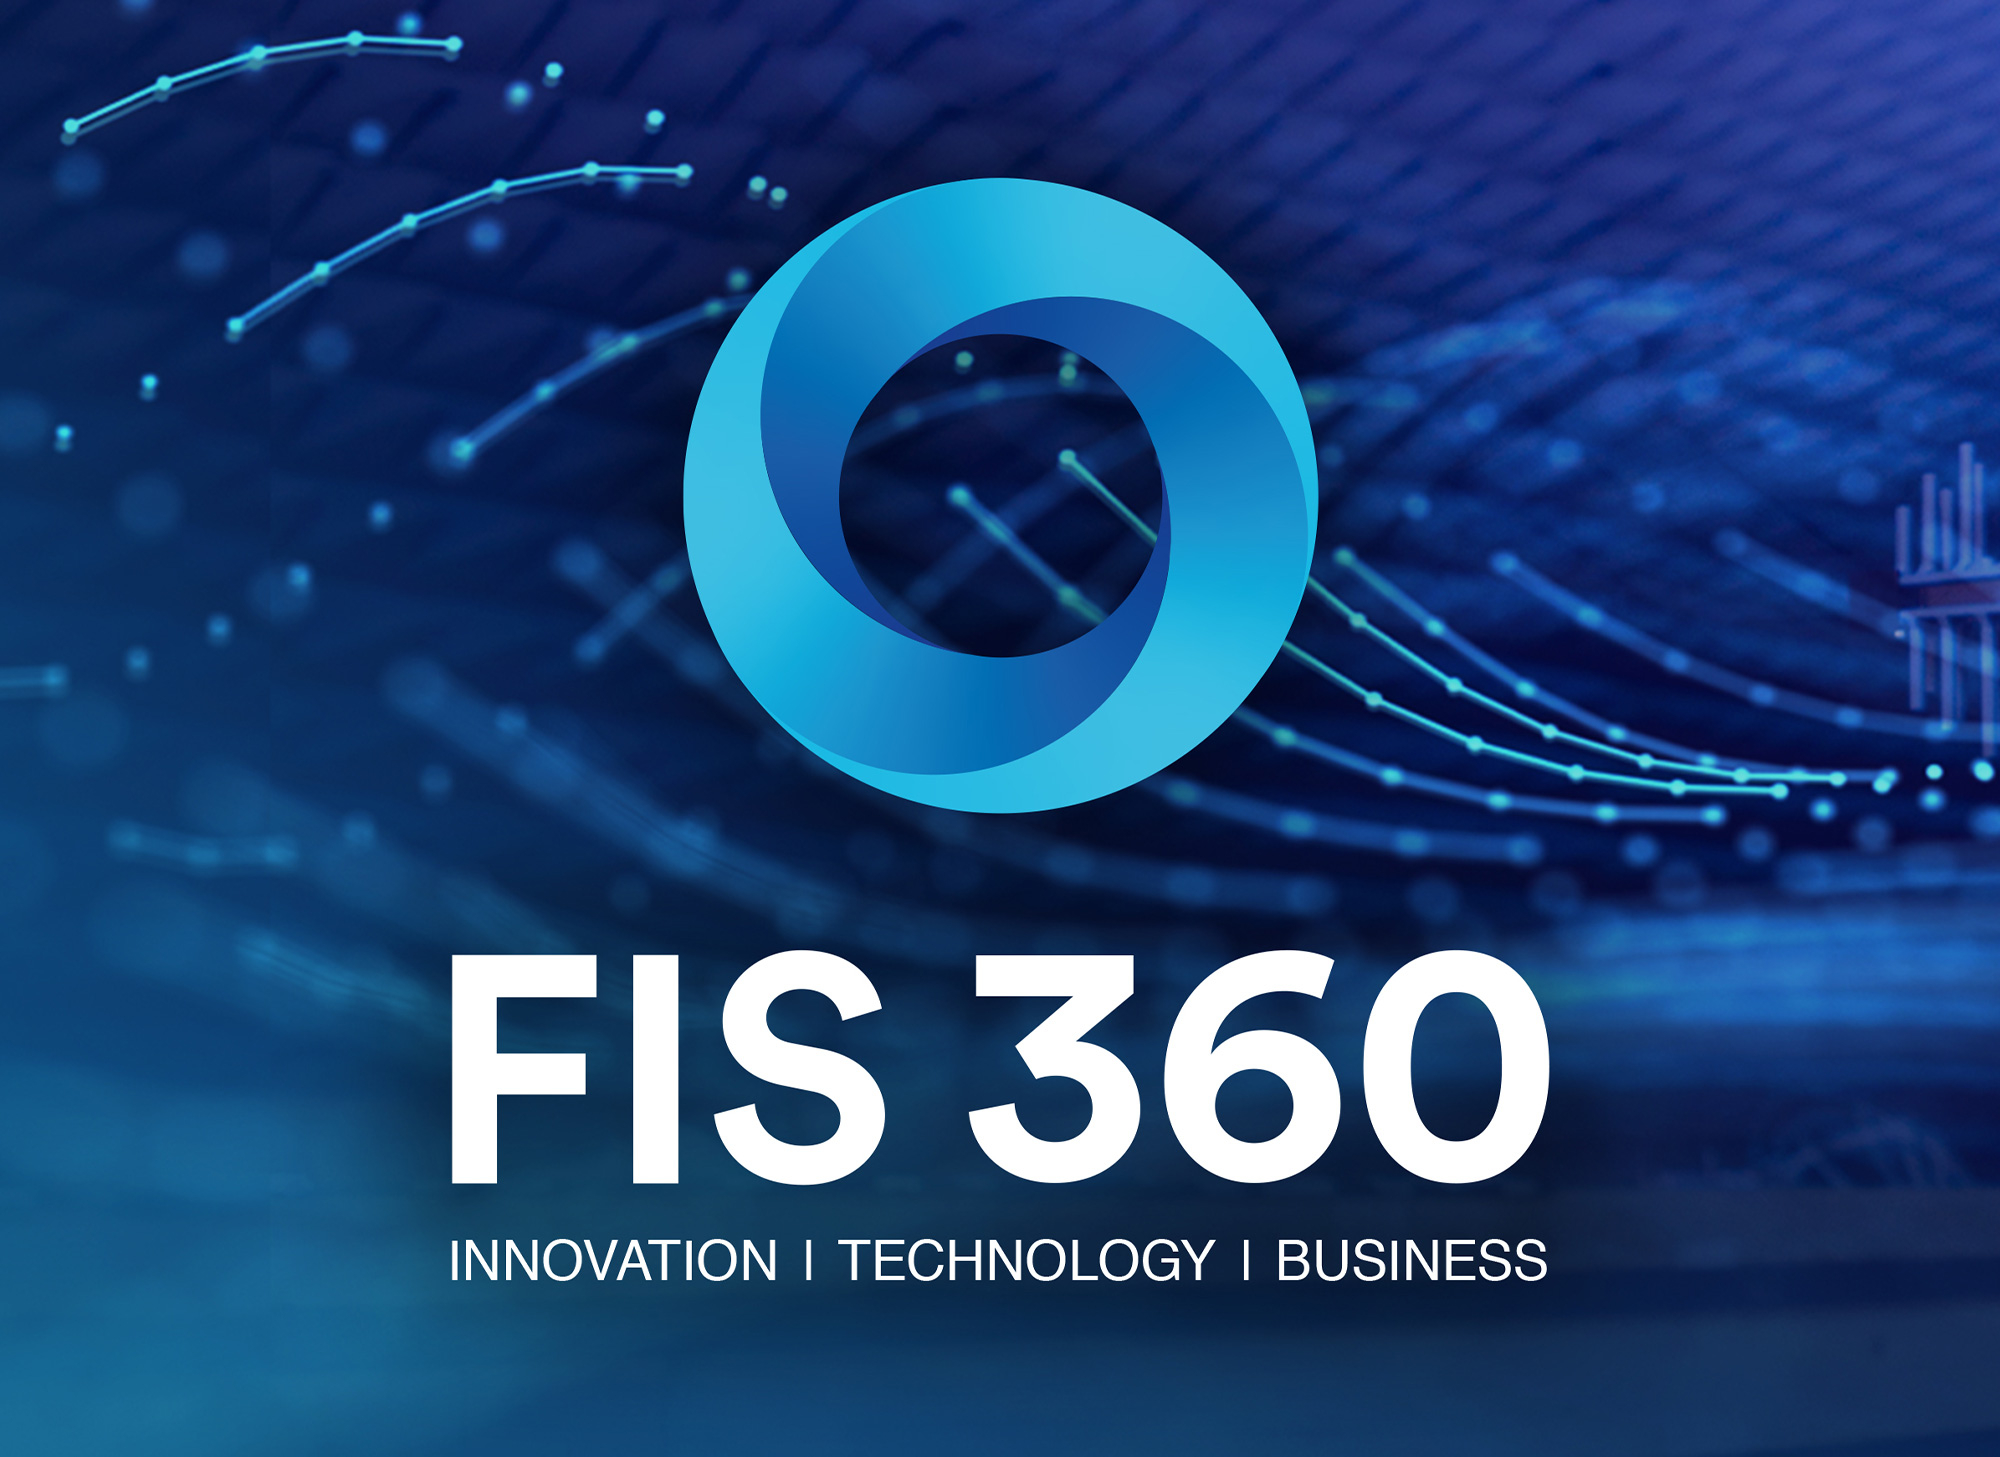 FIS360 web design and re brand